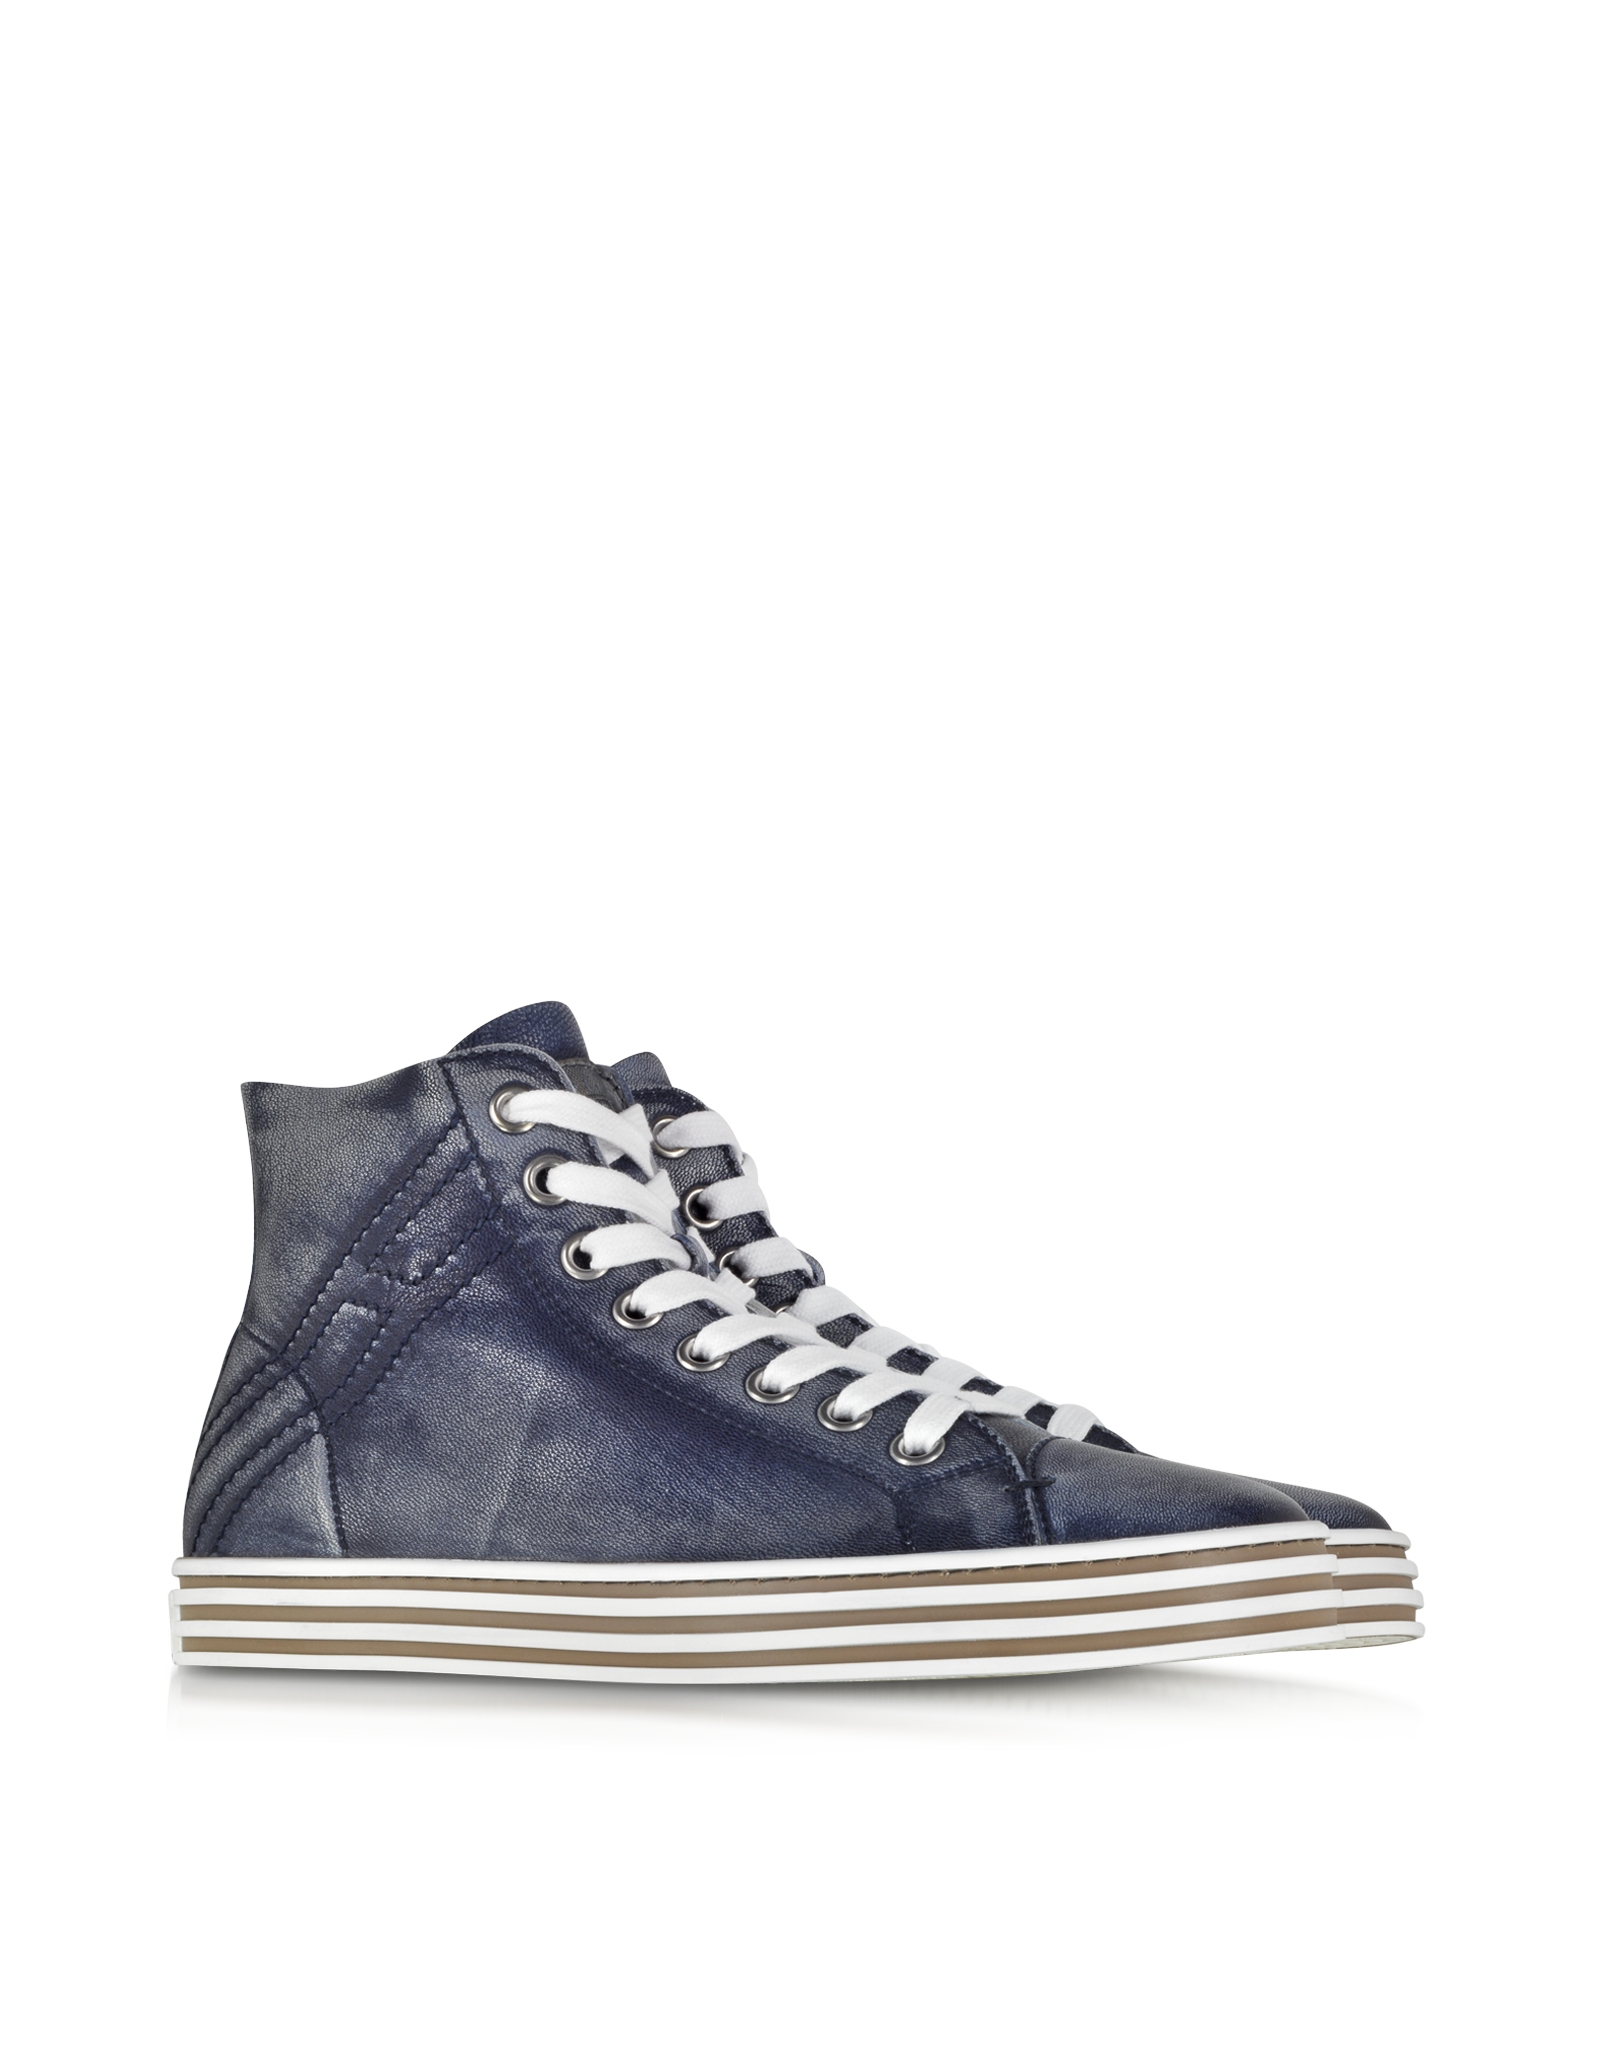 Hogan Rebel Lyst Hogan Rebel Denim Blue Leather High Top Men 39s